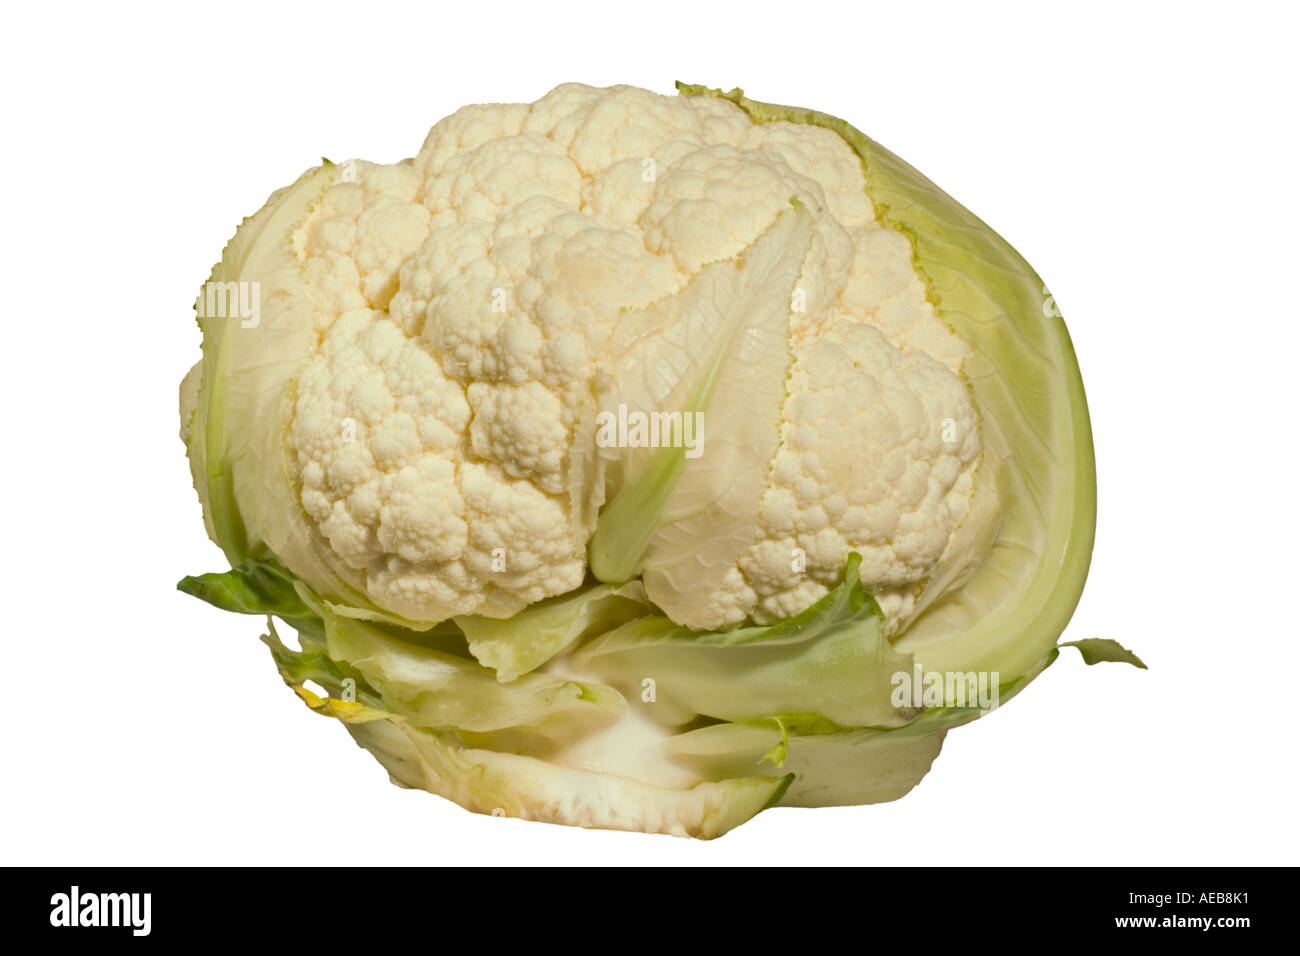 Cauliflower, Tempera. Whole plant Surrey England - Stock Image